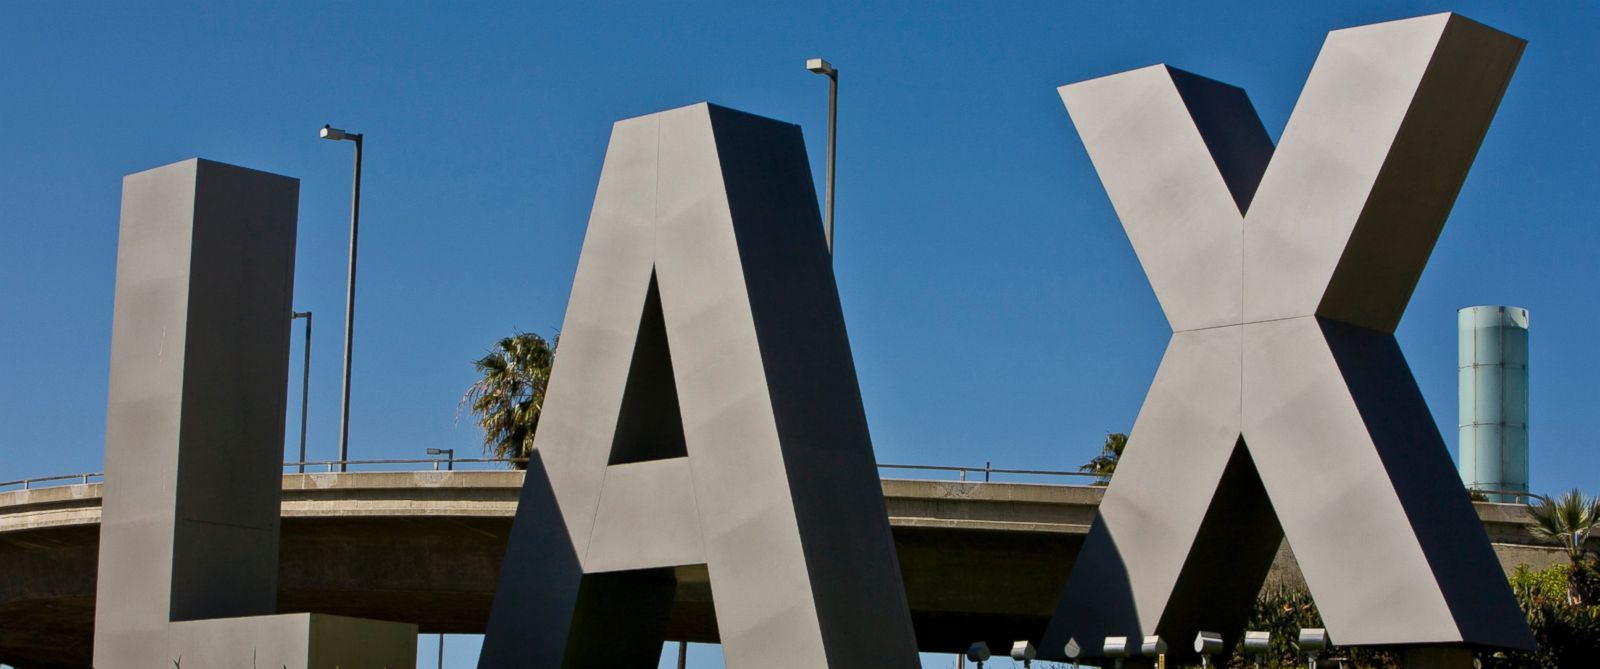 PHOTO: The entrance to Los Angeles International Airport (LAX) is seen on April 14, 2012 in Los Angeles, California.